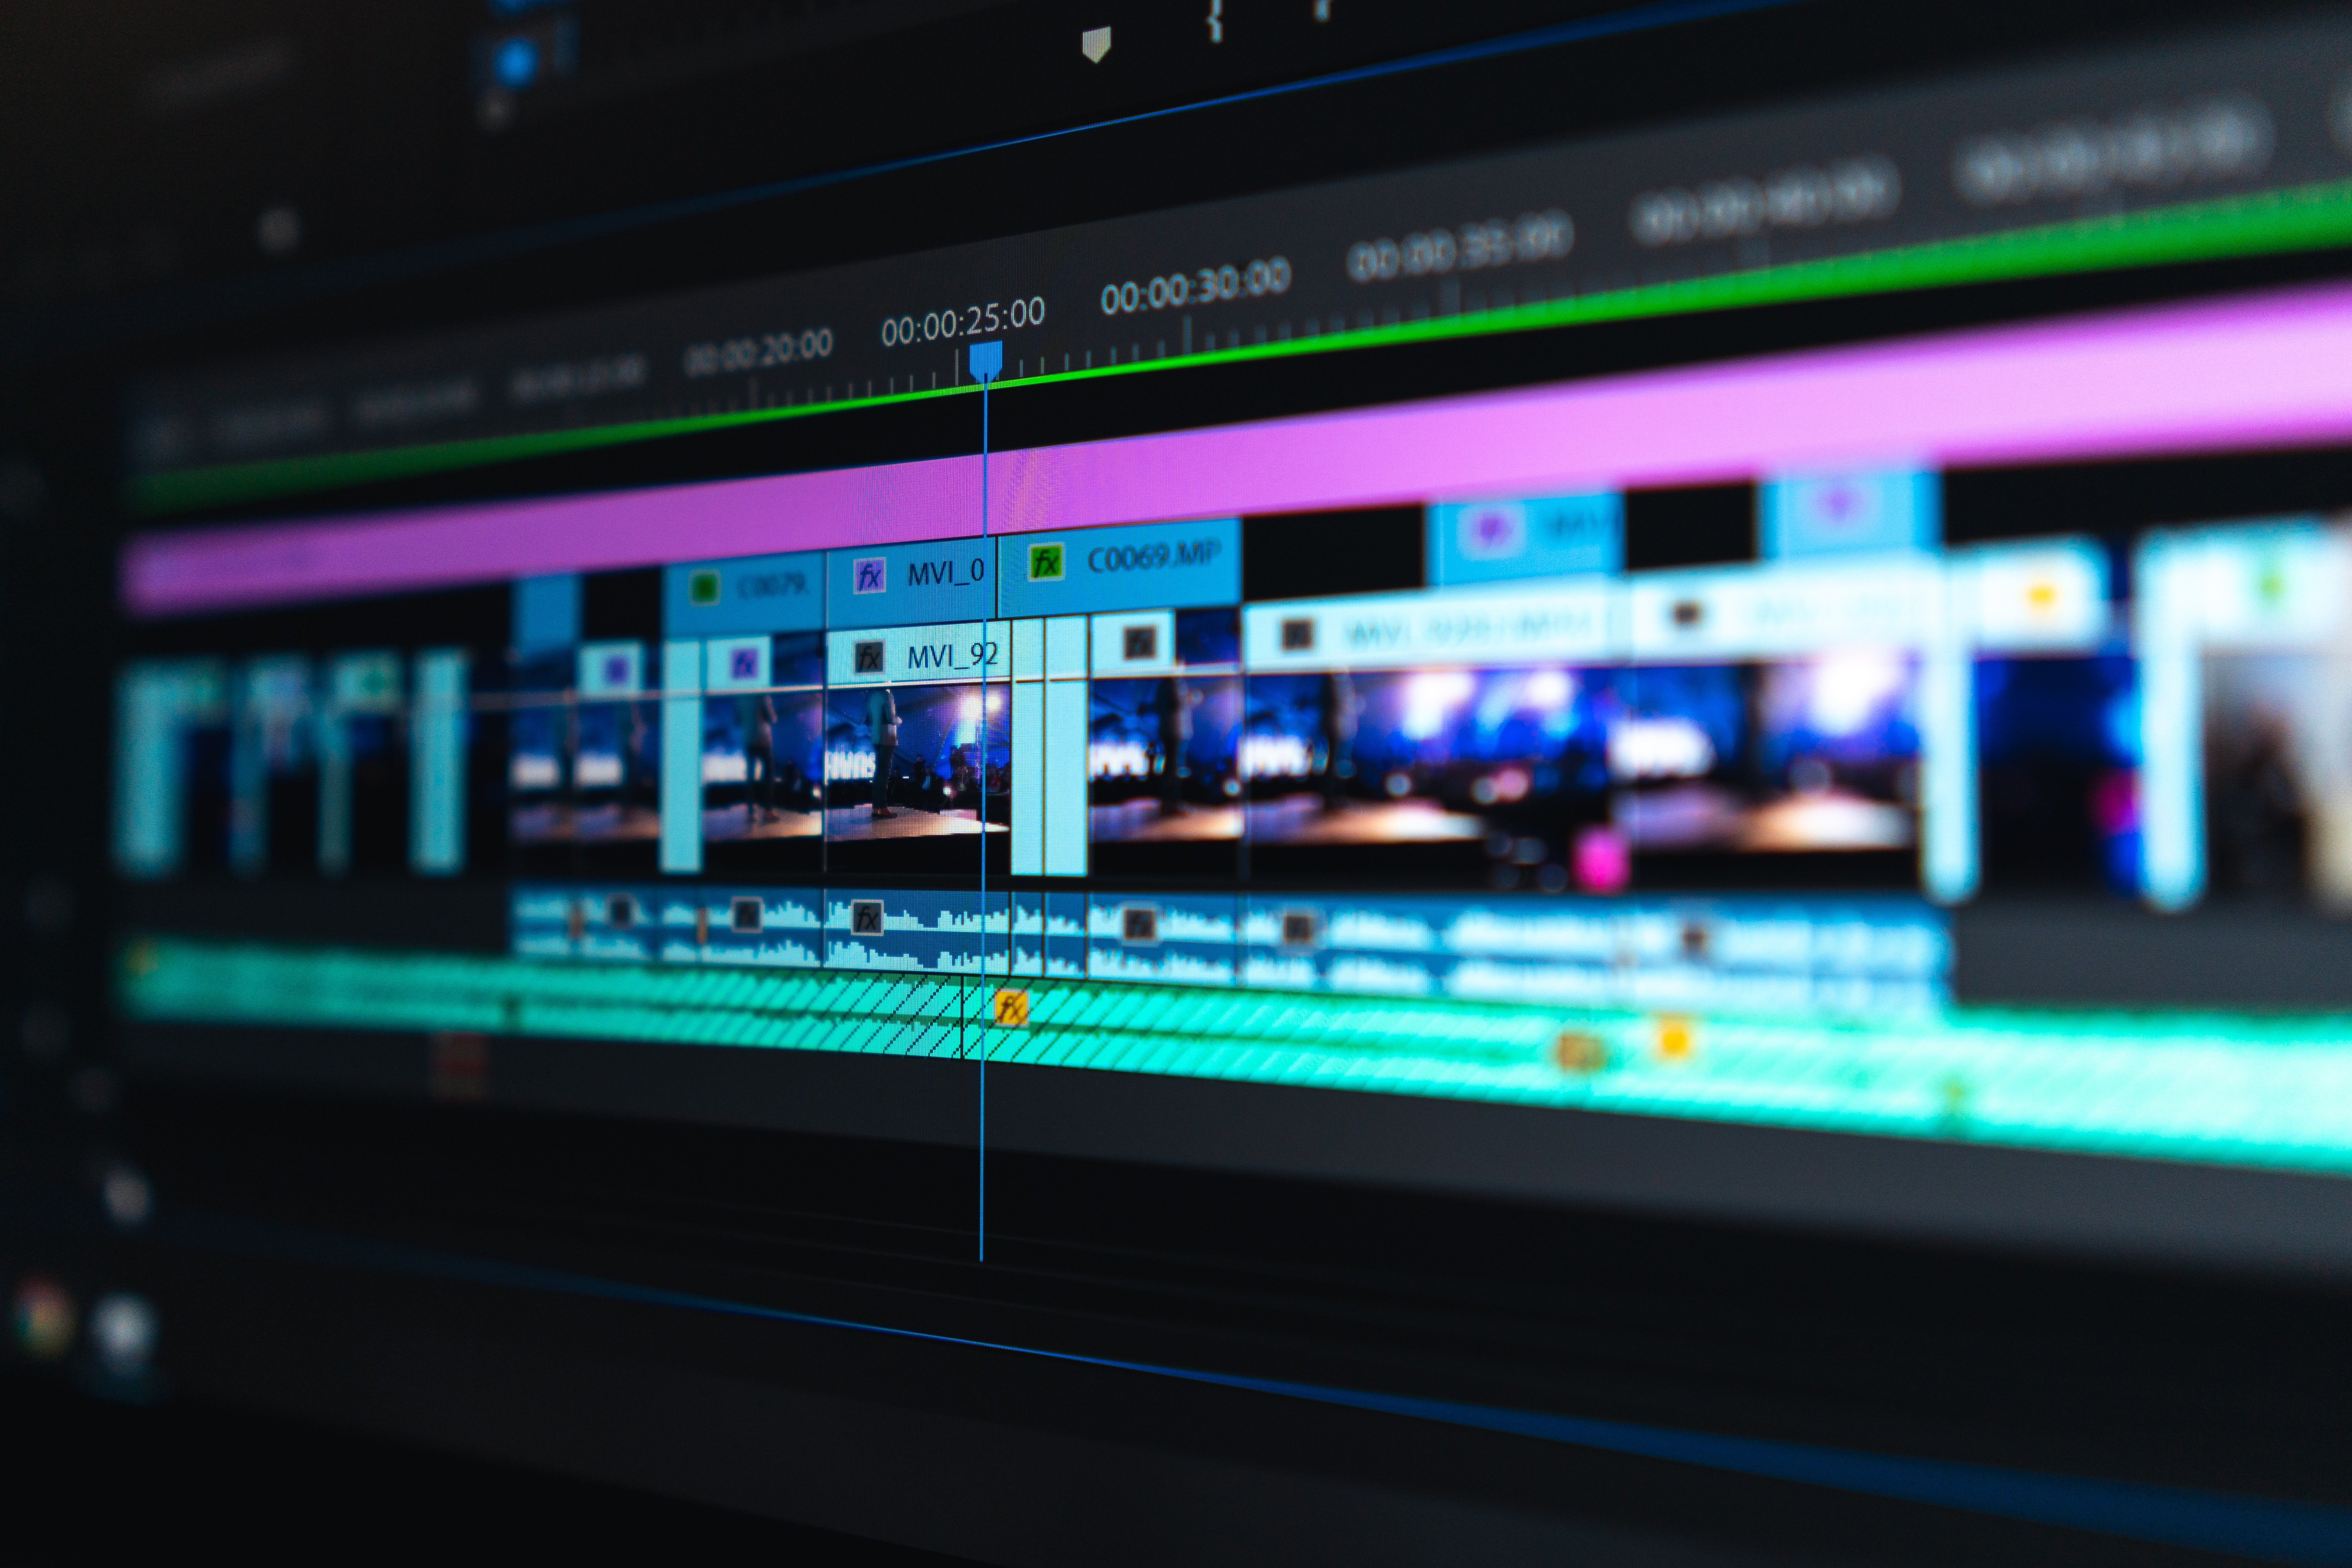 Top 7 video editing software for windows 10 in 2020